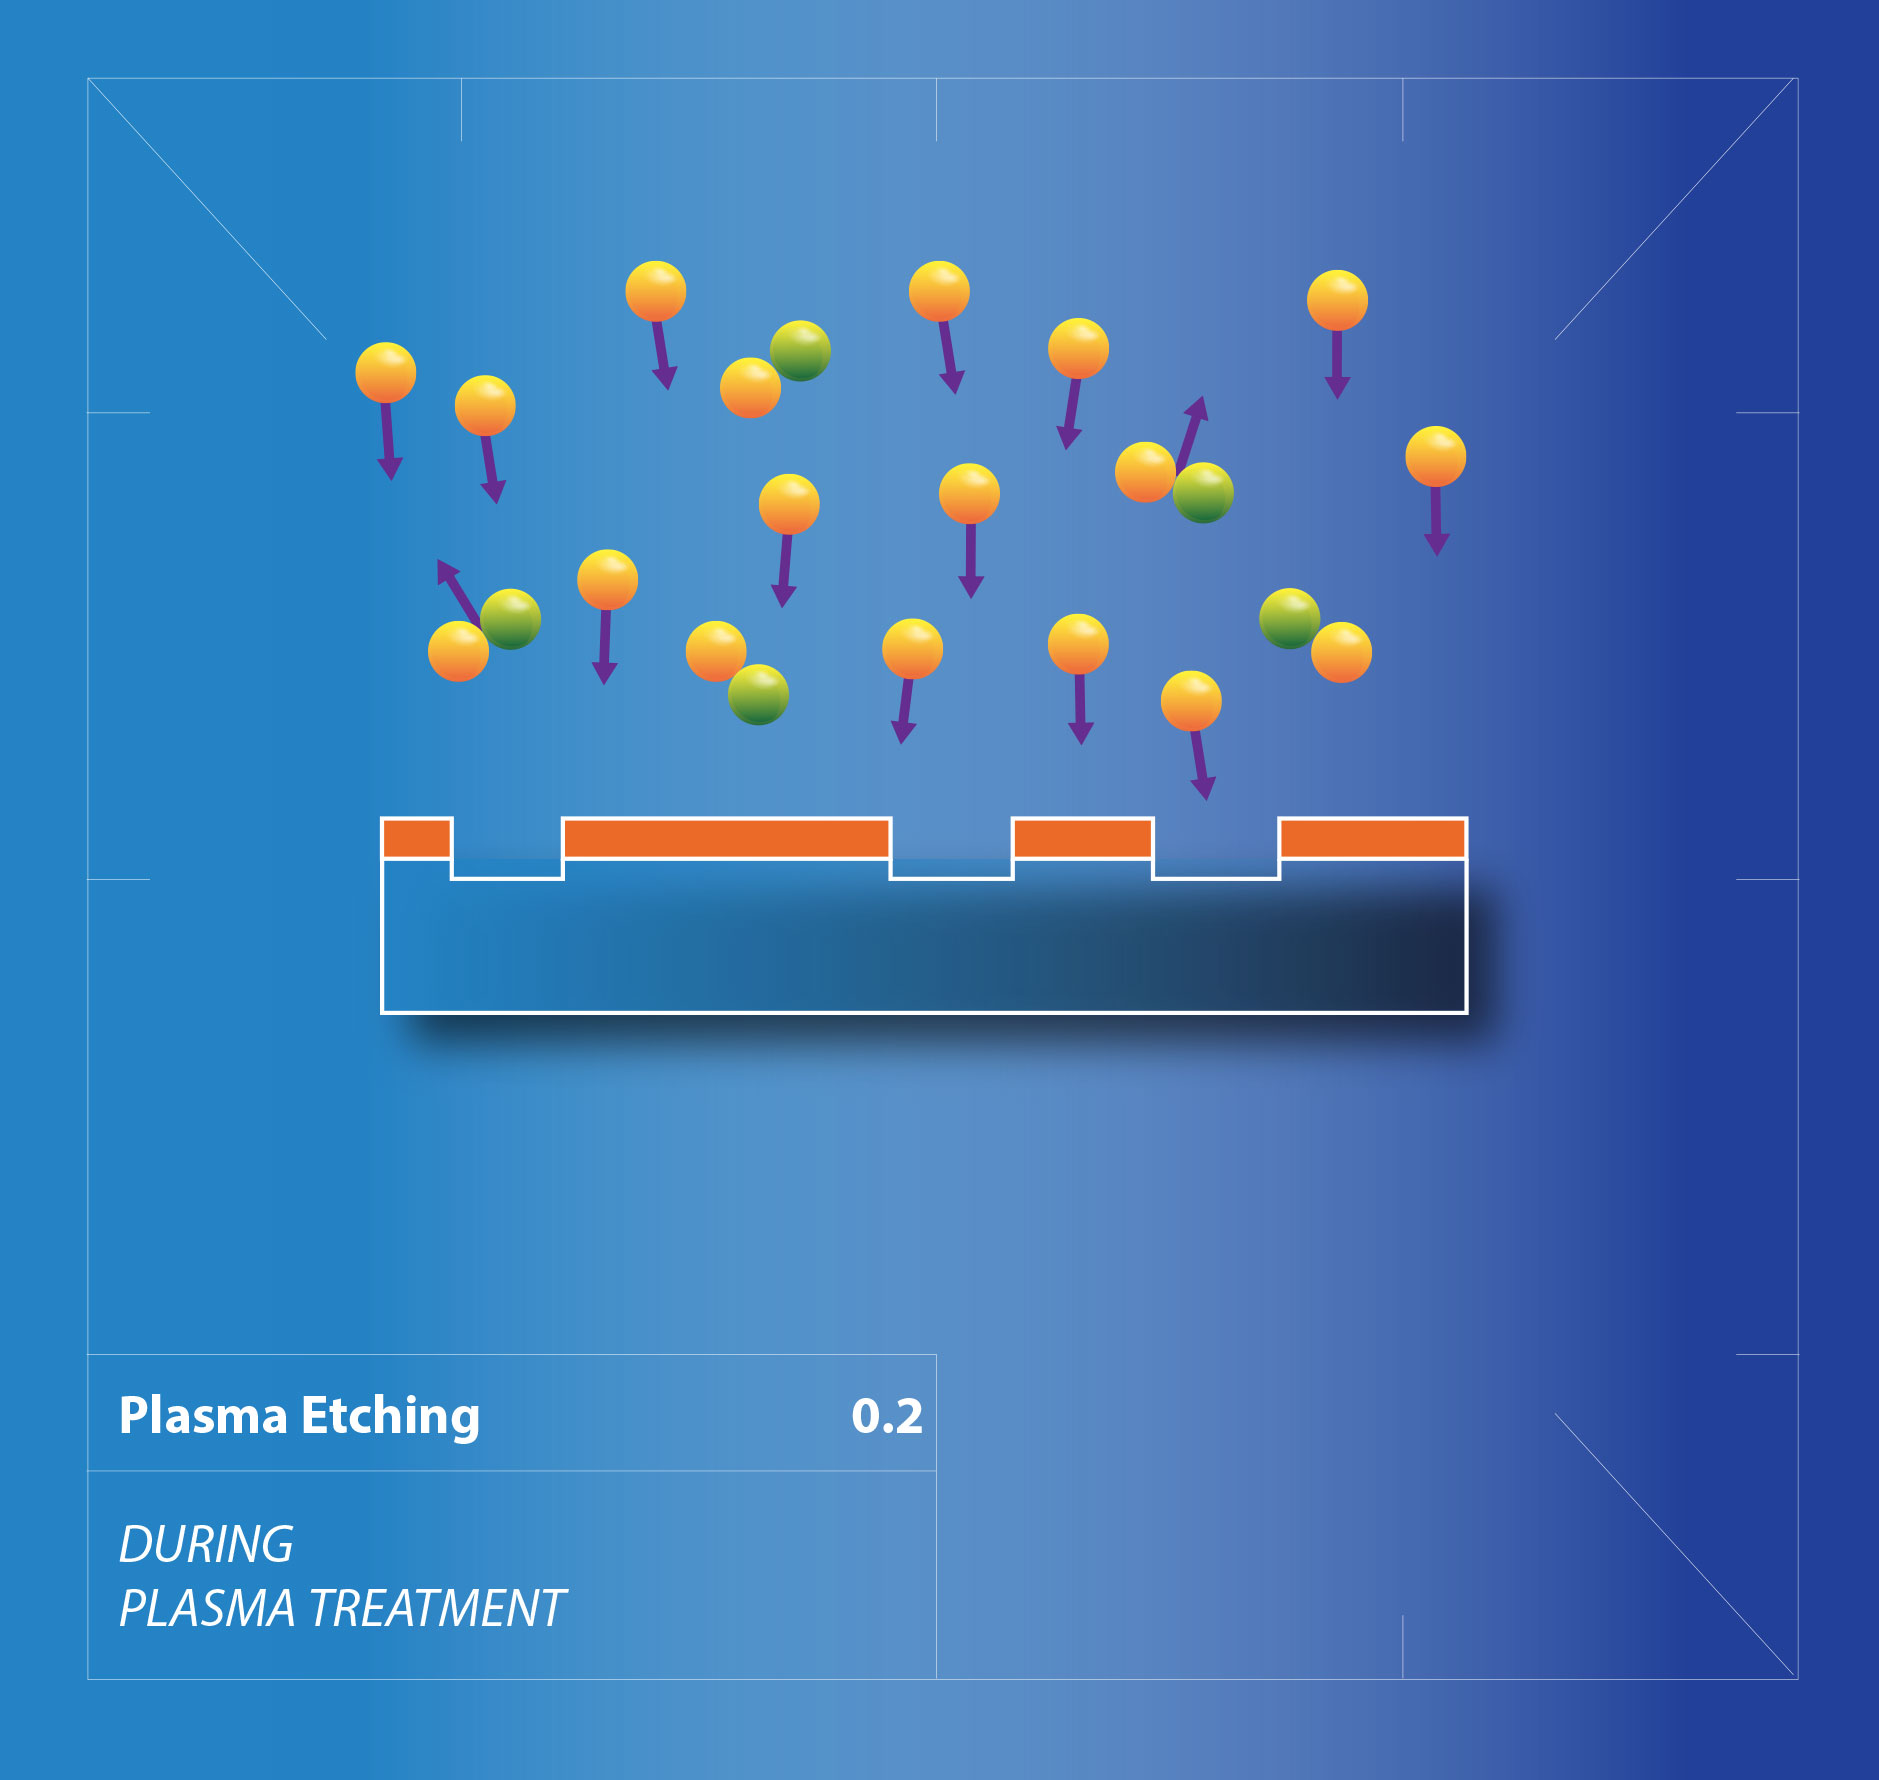 What is plasma etching